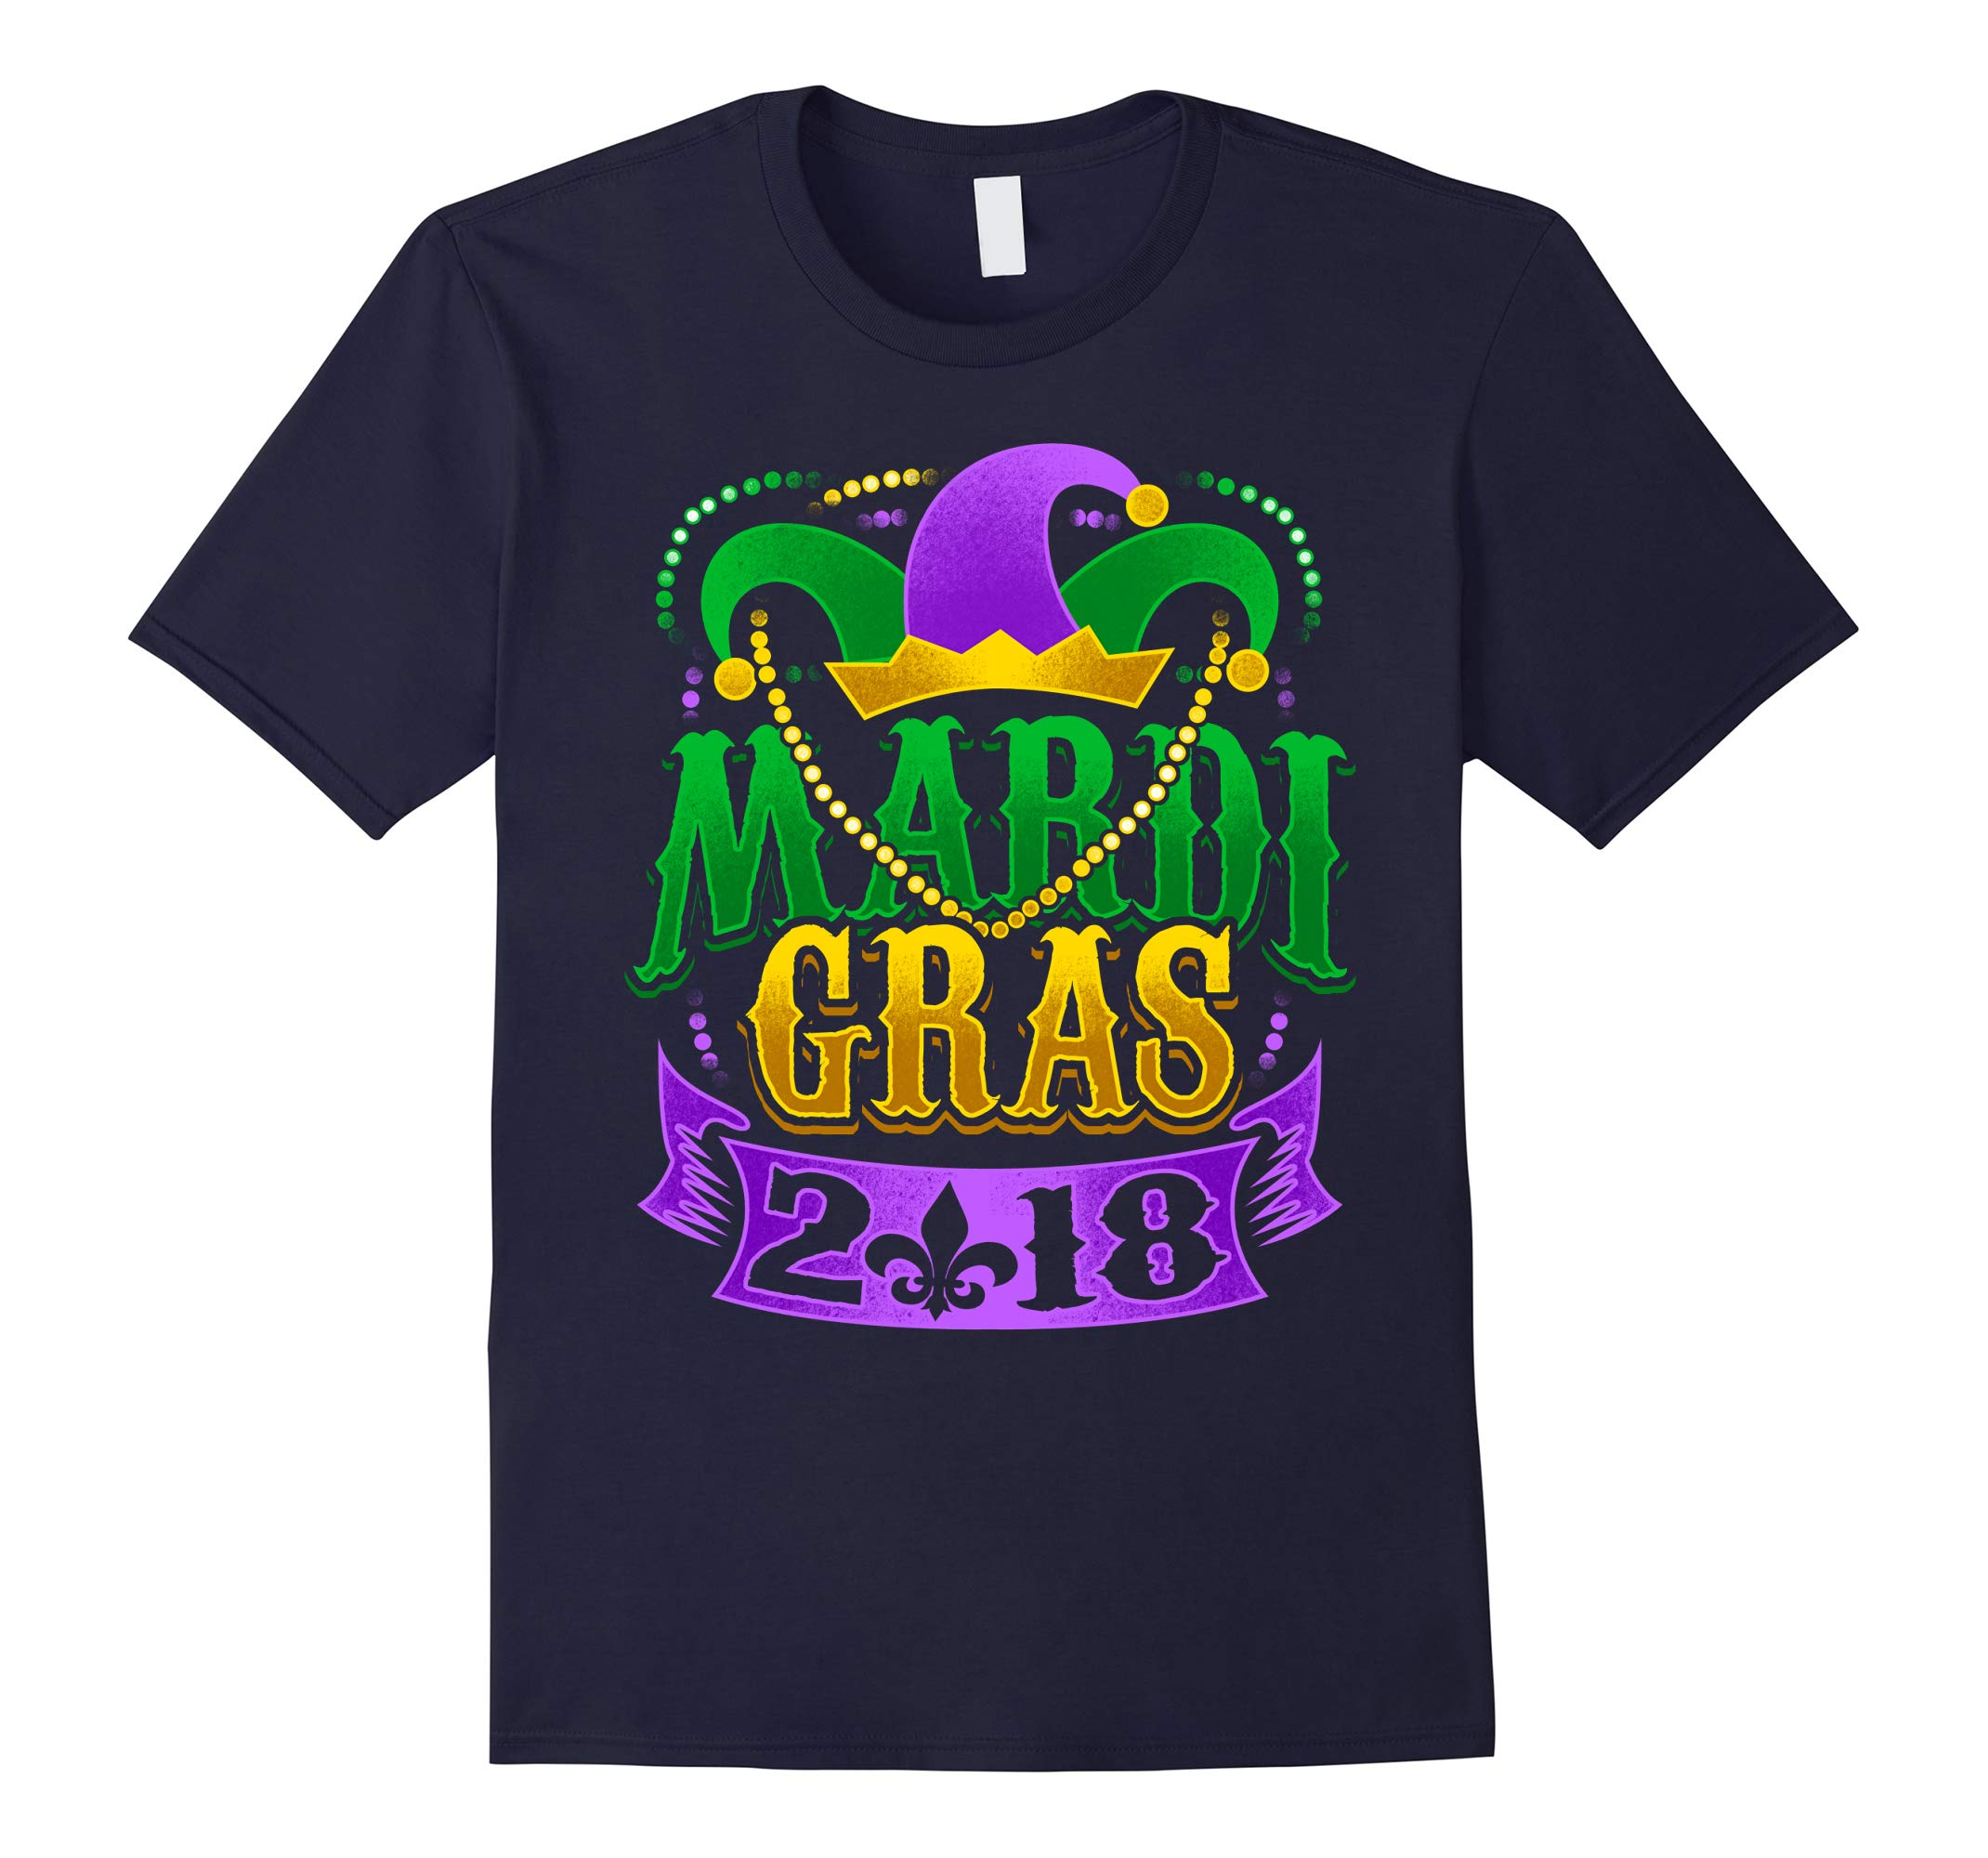 Mardi Gras 2018 T Shirt Beads 2018 Mardi Gras Louisiana-RT